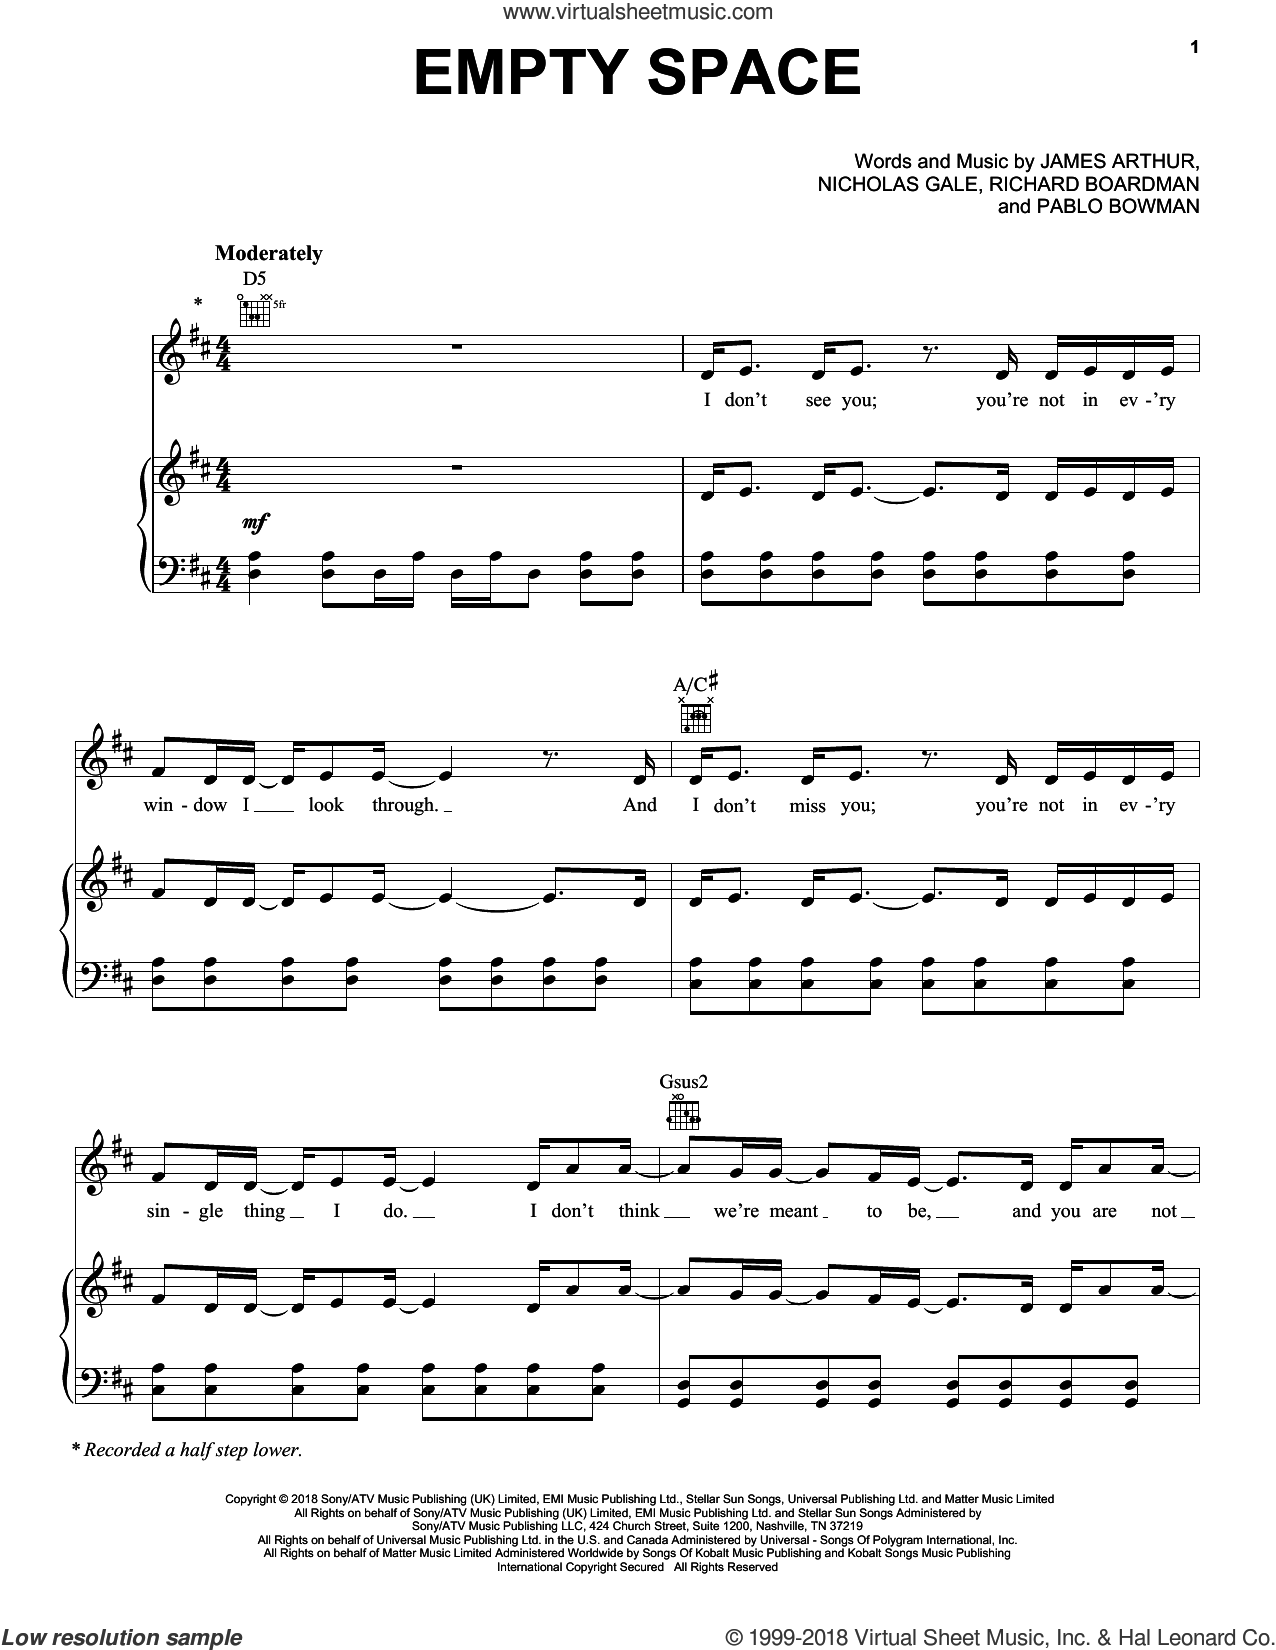 Empty Space sheet music for voice, piano or guitar by James Arthur, Nicholas Gale, Pablo Bowman and Richard Boardman, intermediate skill level